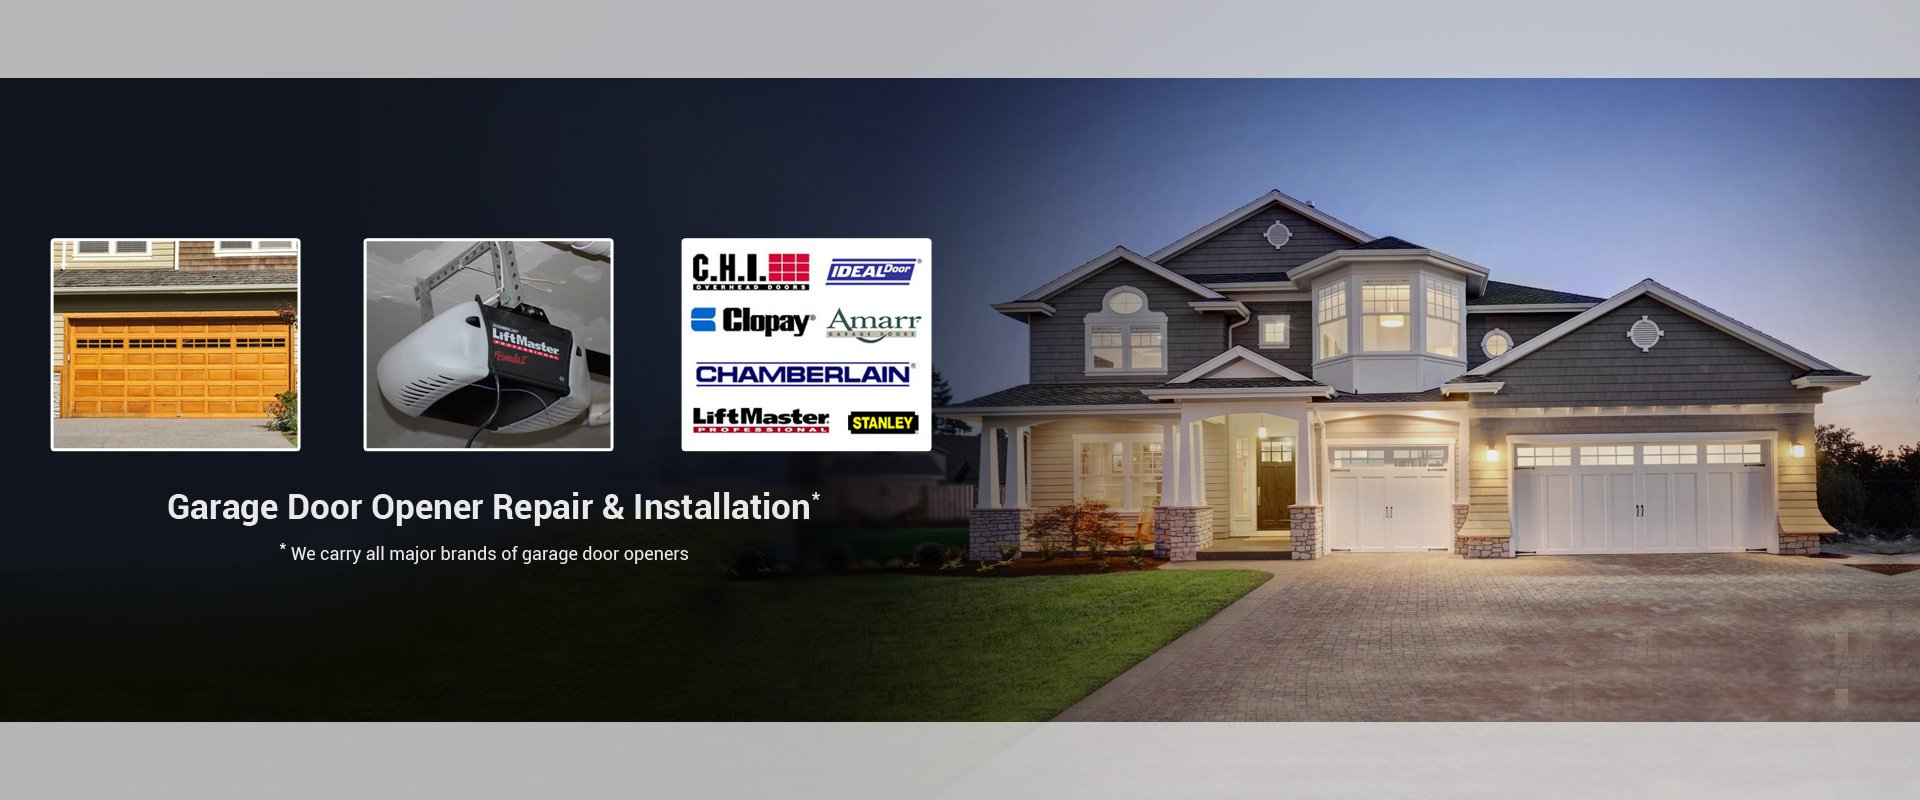 Garage Door Opener Repair And Installation Services Thousand Oaks CA